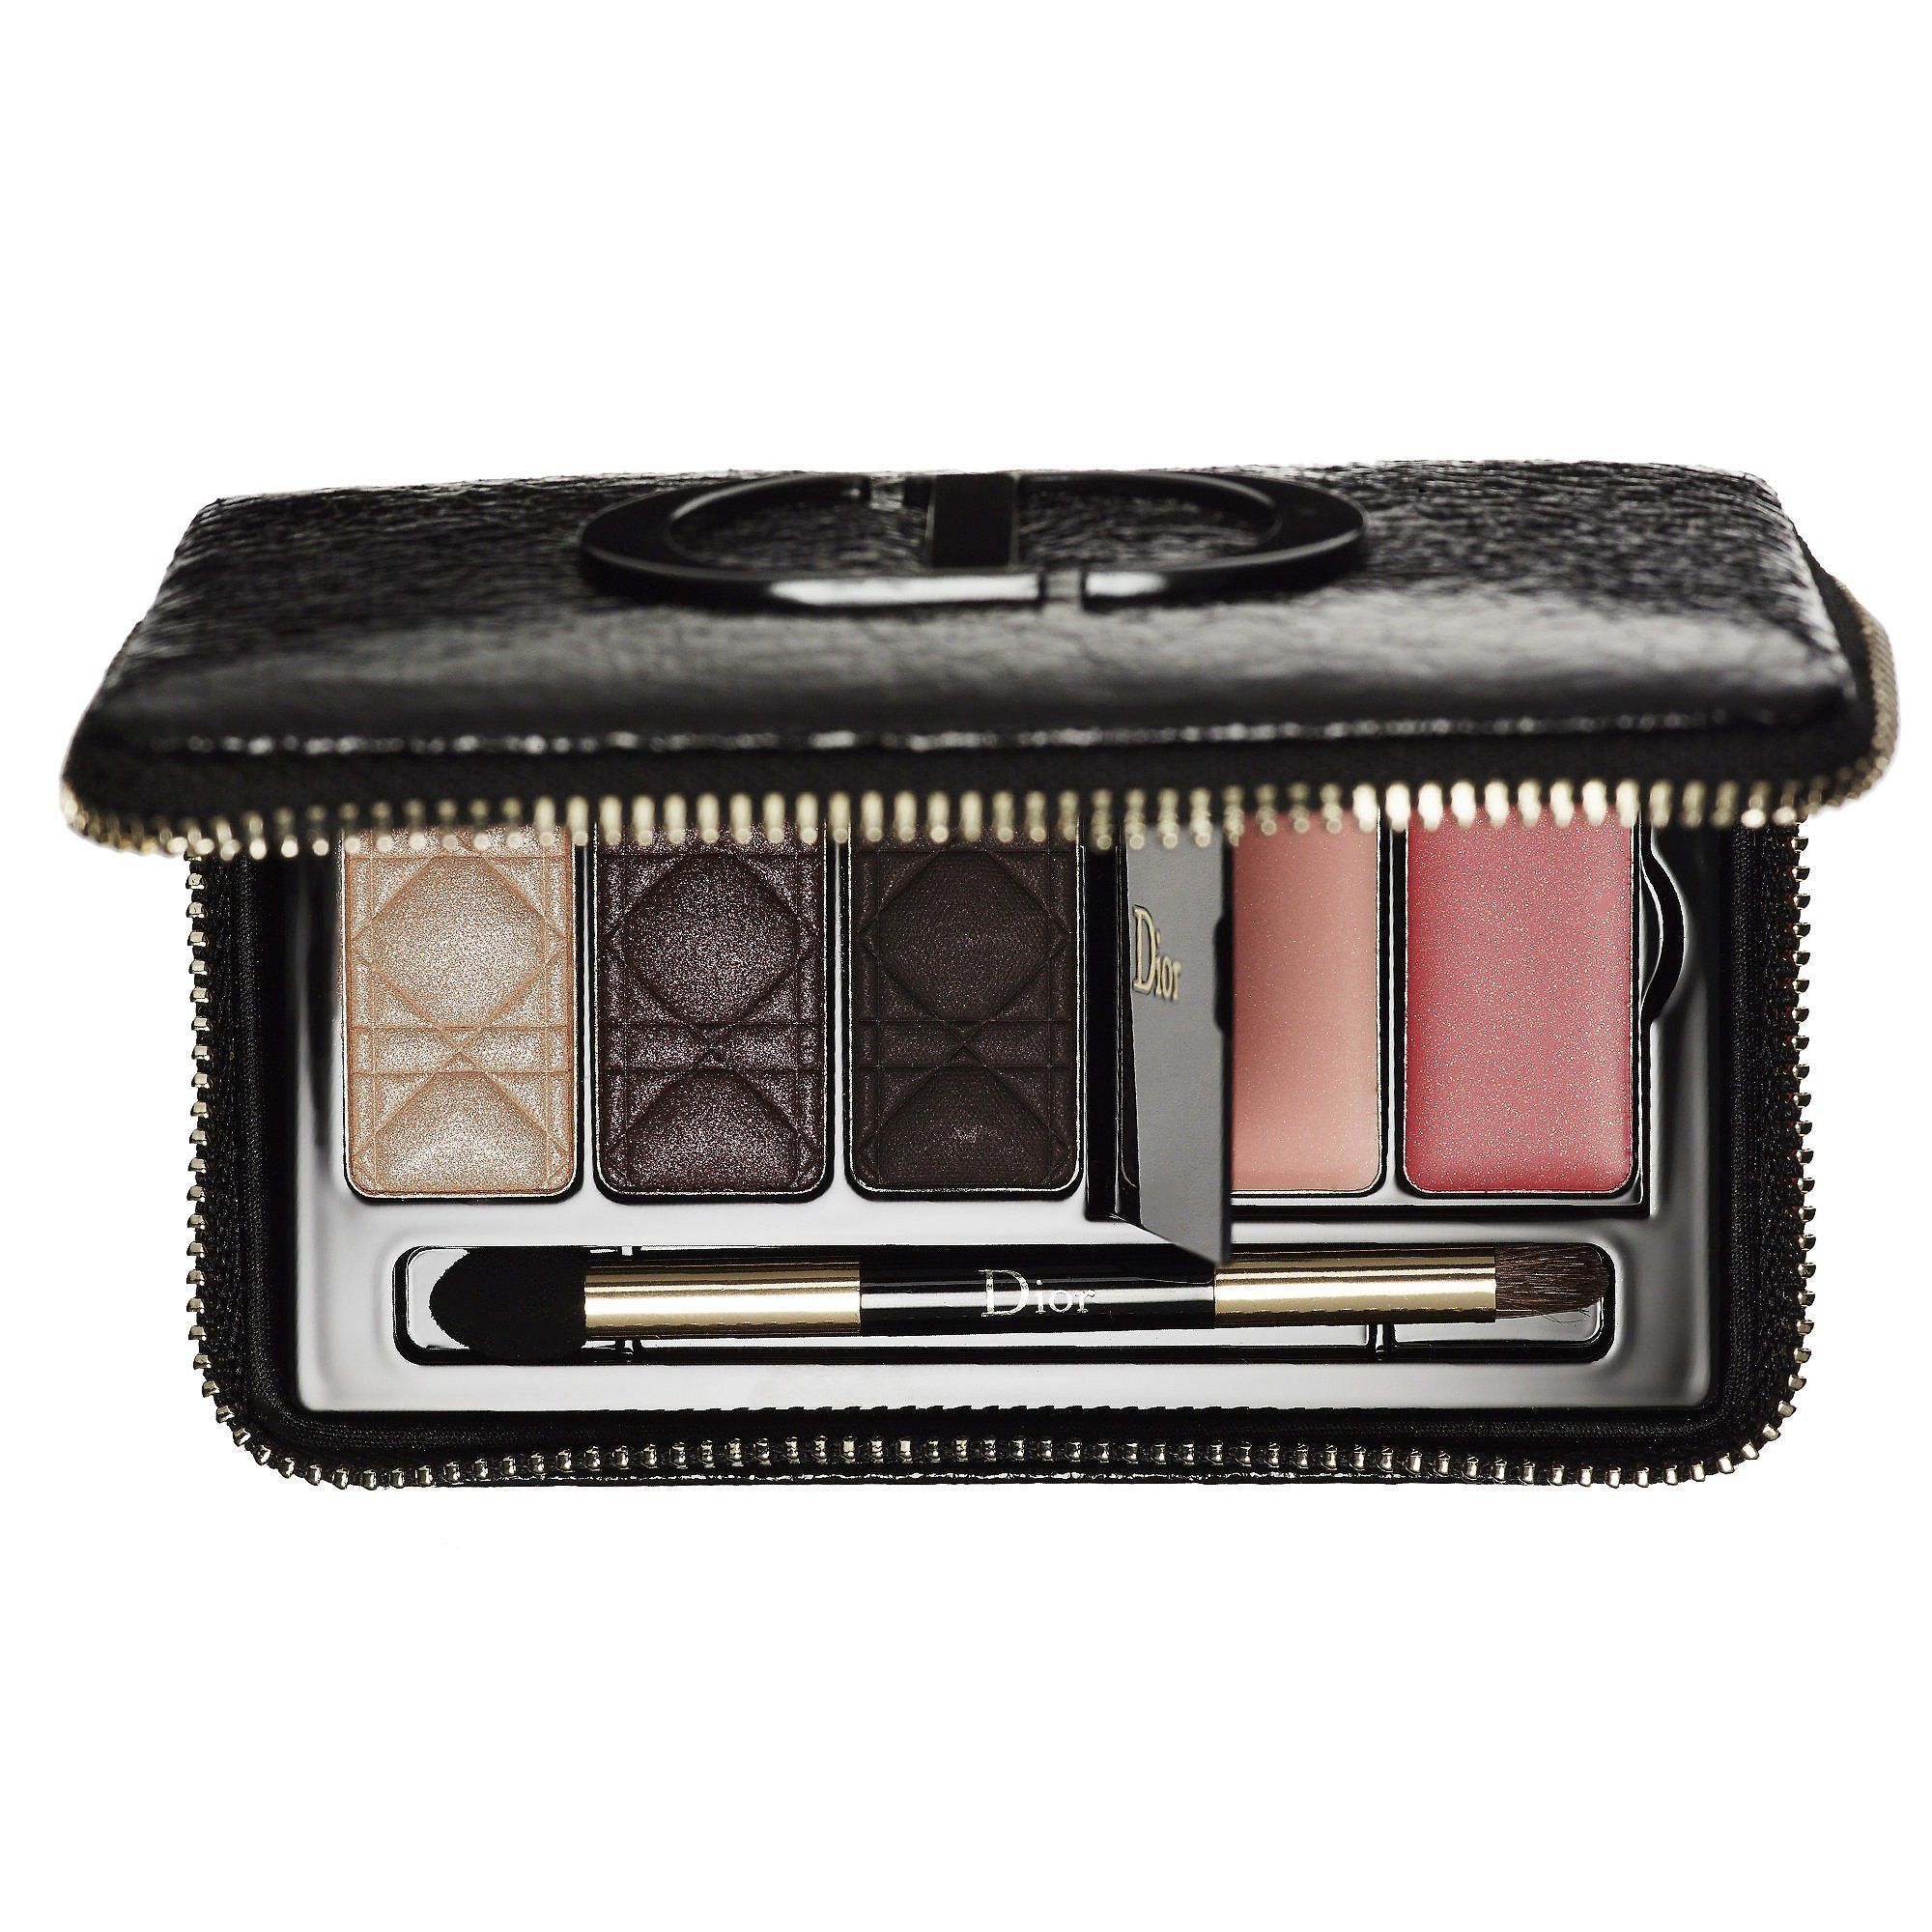 Couture Color Wardrobe Eye & Lip Palette by Dior #8